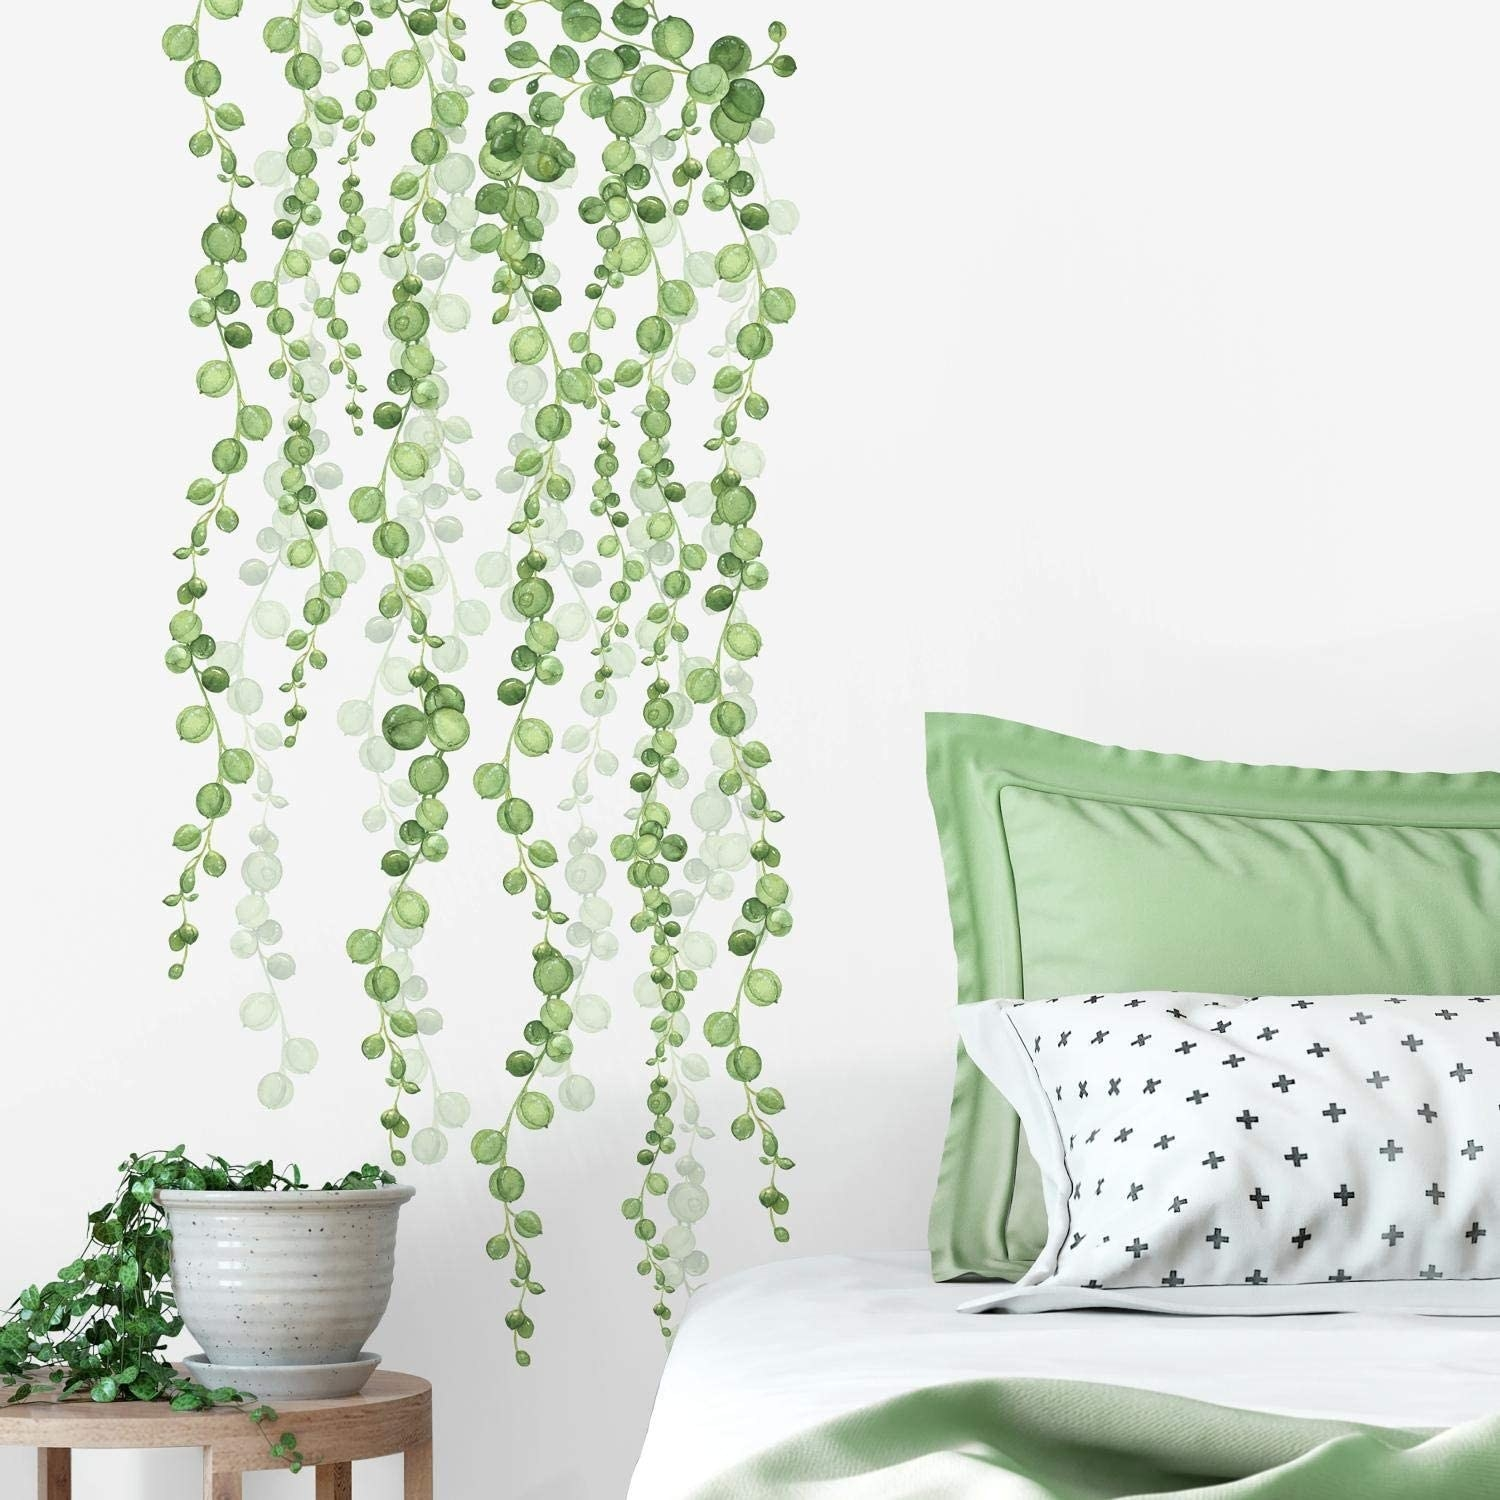 Vine wall decals placed on wall above bed and nightstand